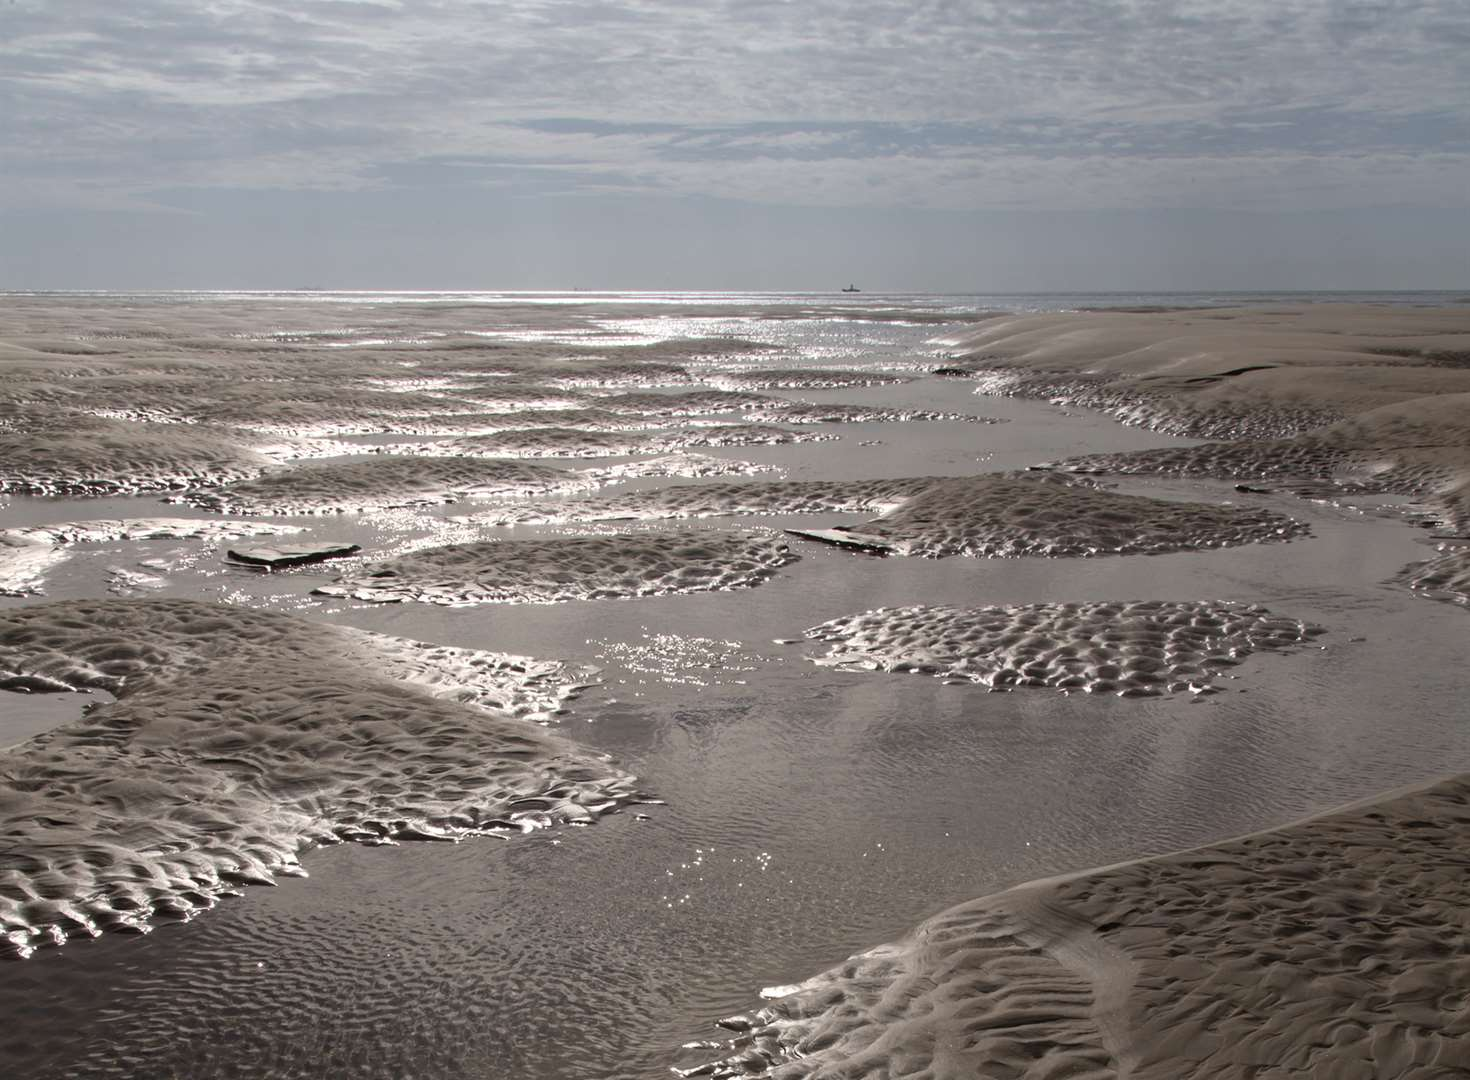 Goodwin Sands - third consultation expected